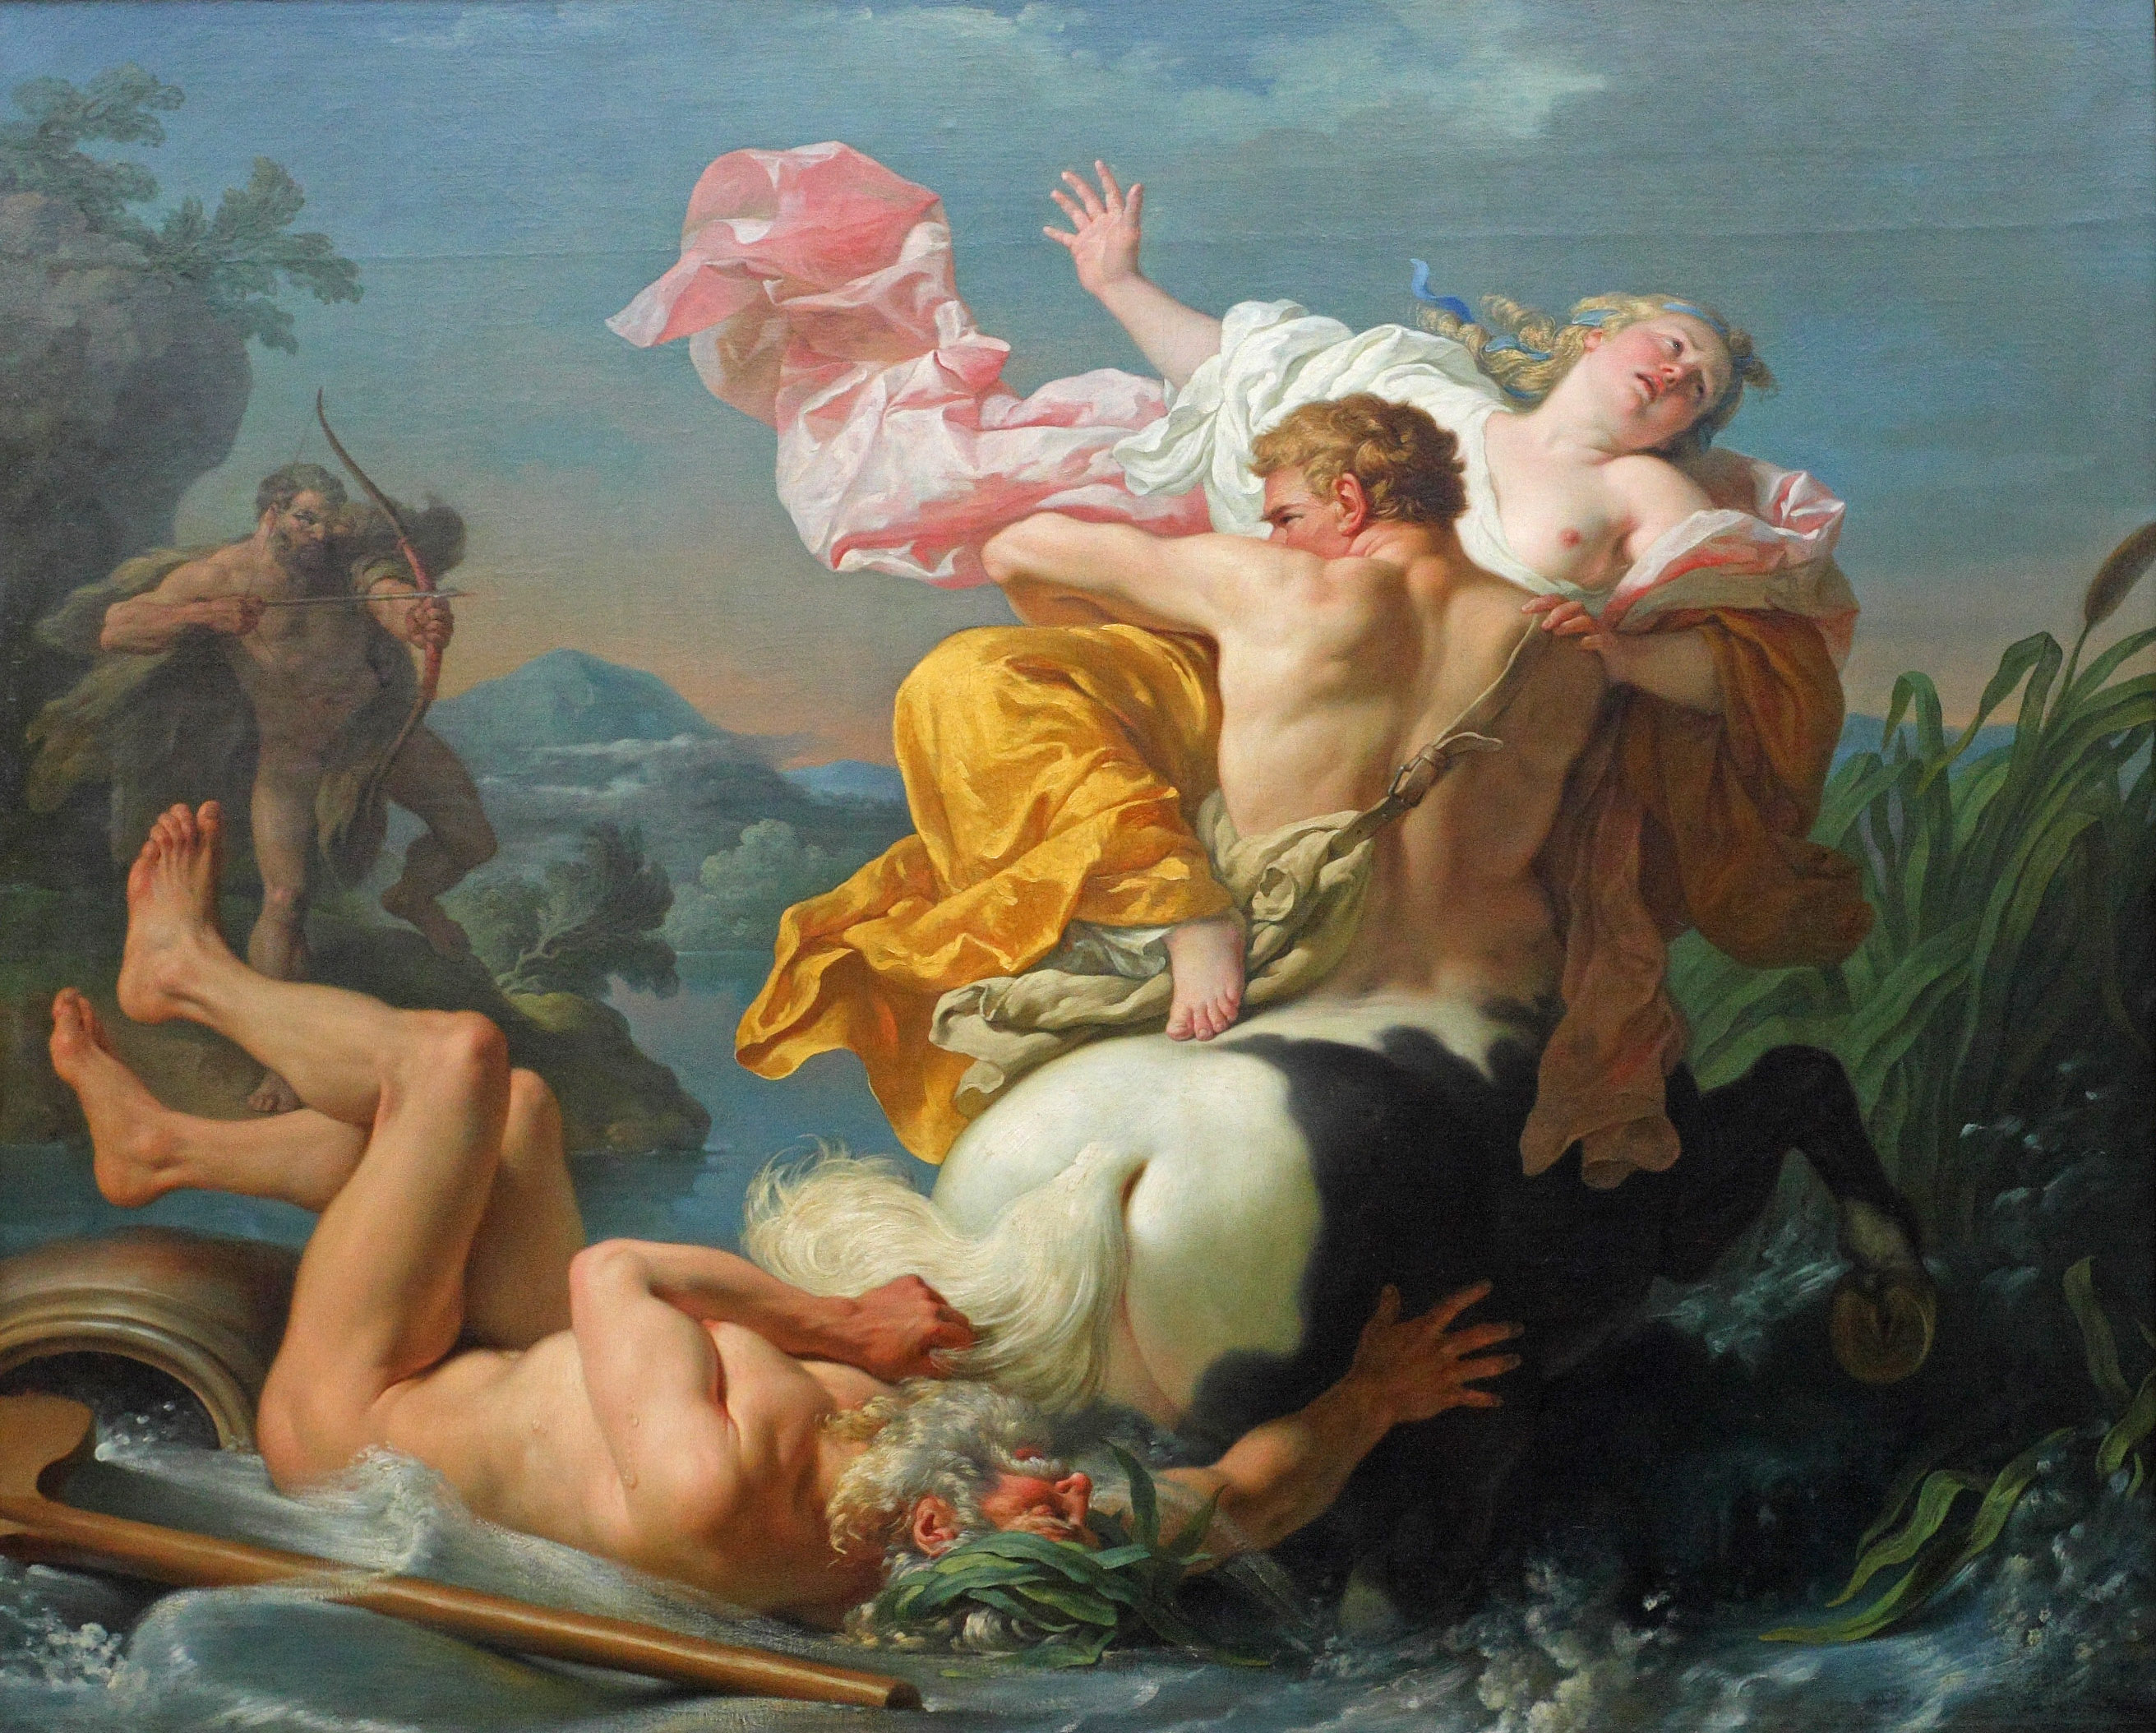 Lagrenee, Louis Jean - The Abduction of Deianeira by the Centaur Nessus - 1755